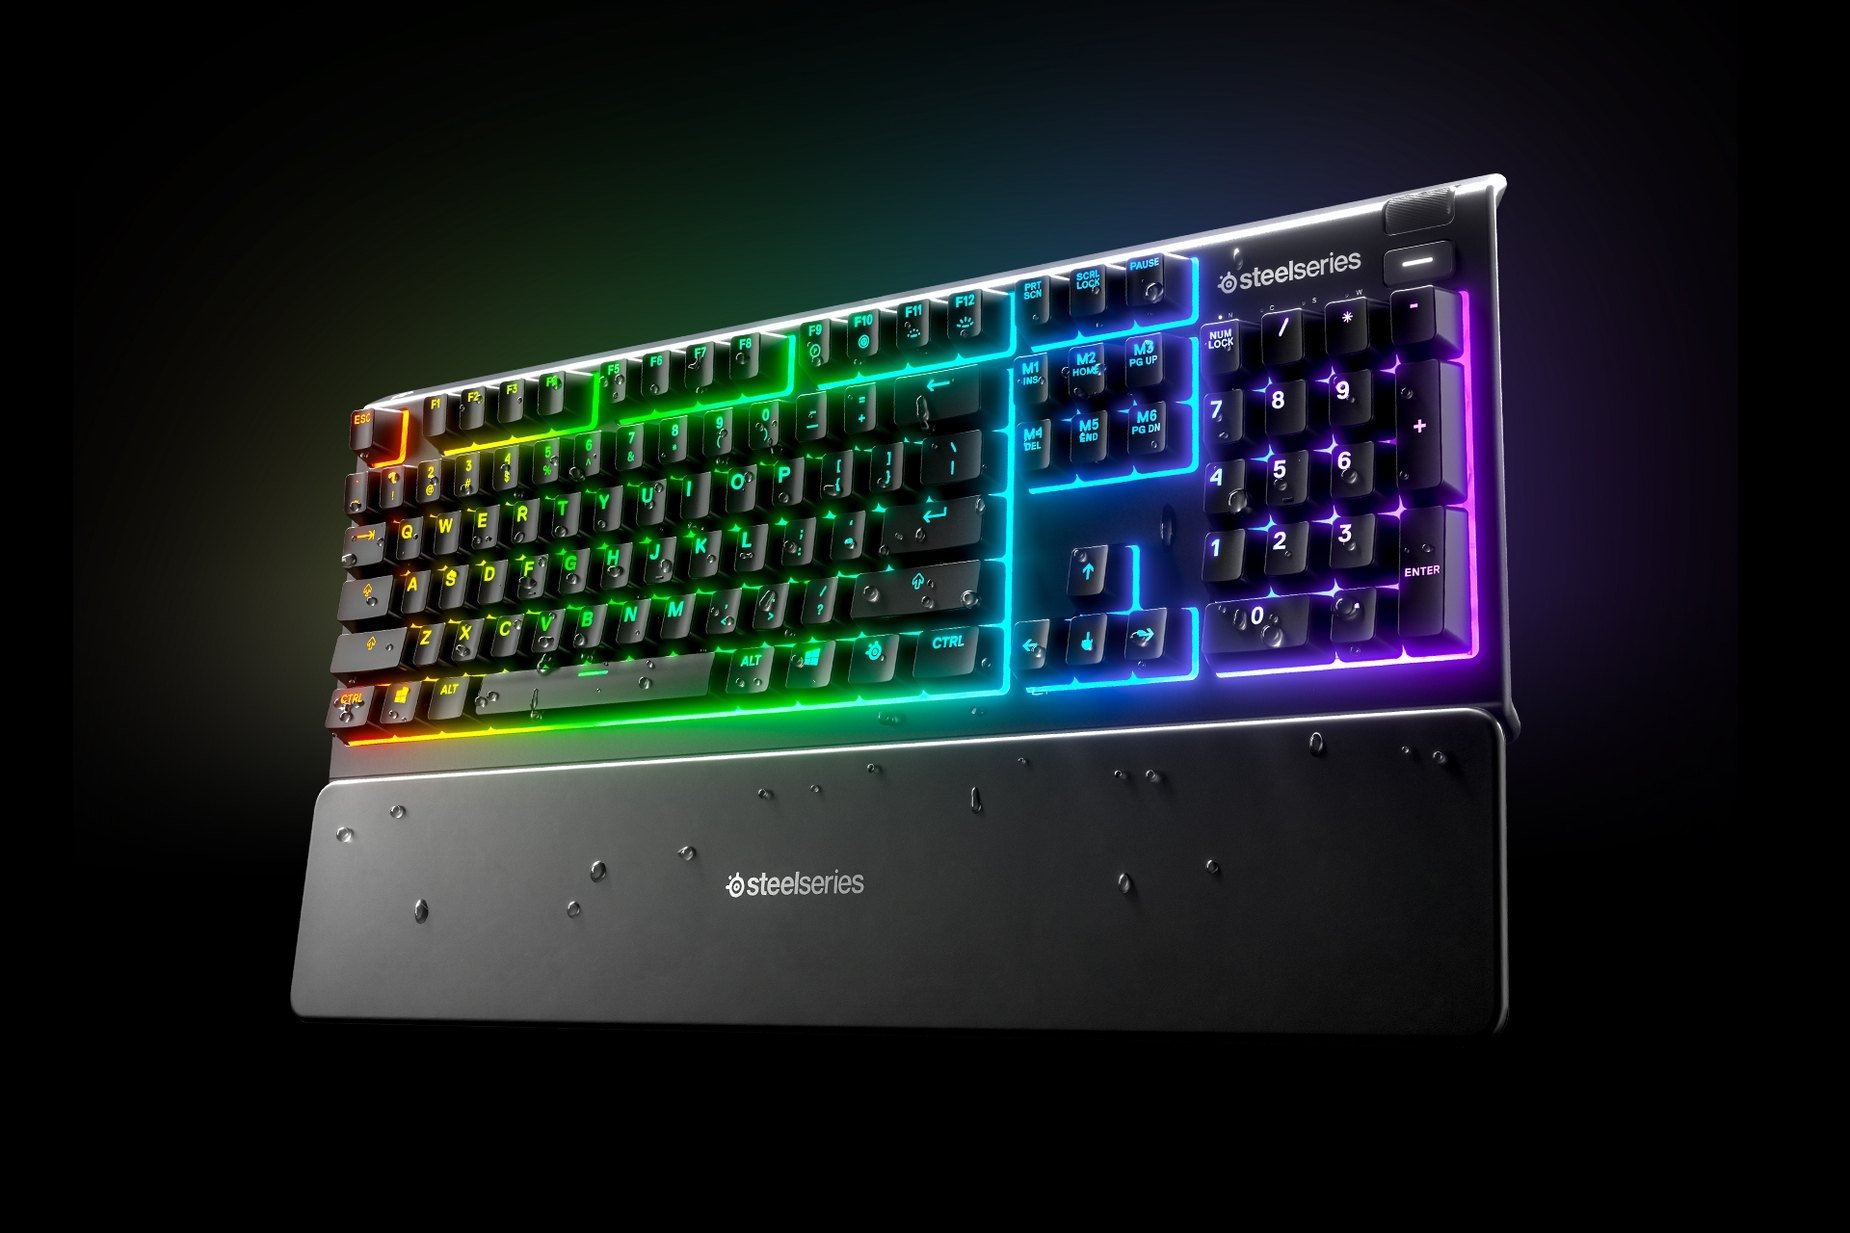 Apex 3 gaming keyboard with water droplets dripping off of it while still being illuminated to show the water resistance